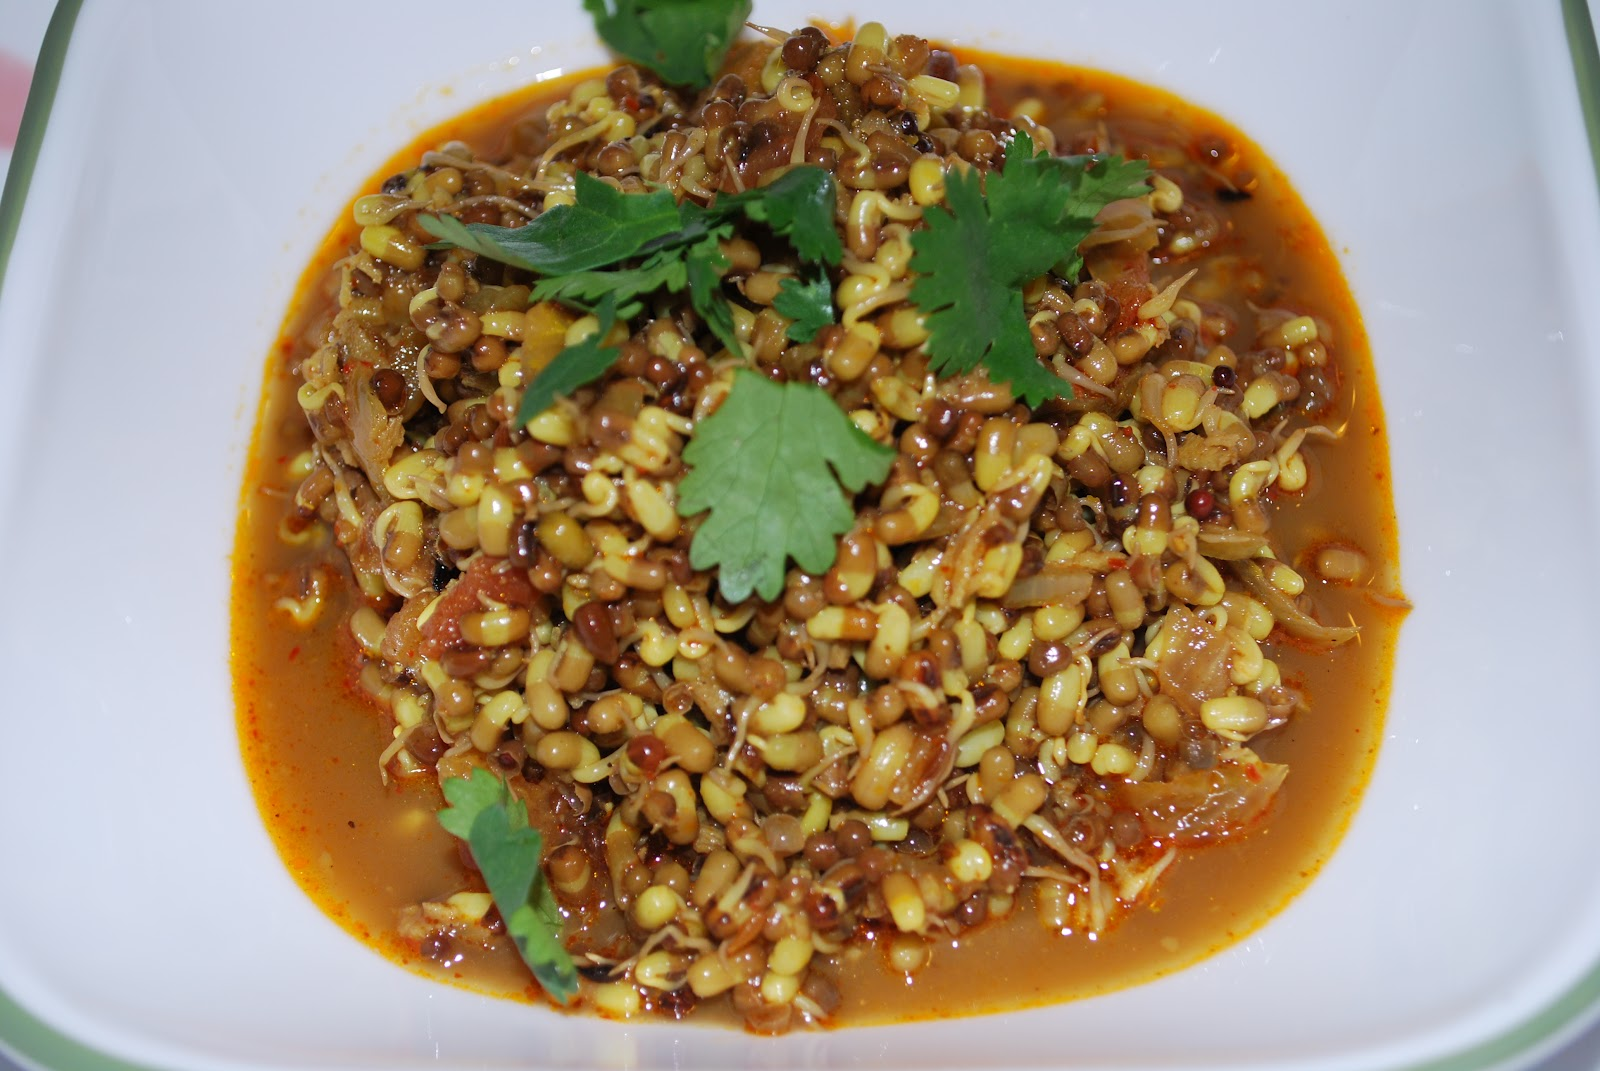 SpiceNFlavors MisalSprouted Beans